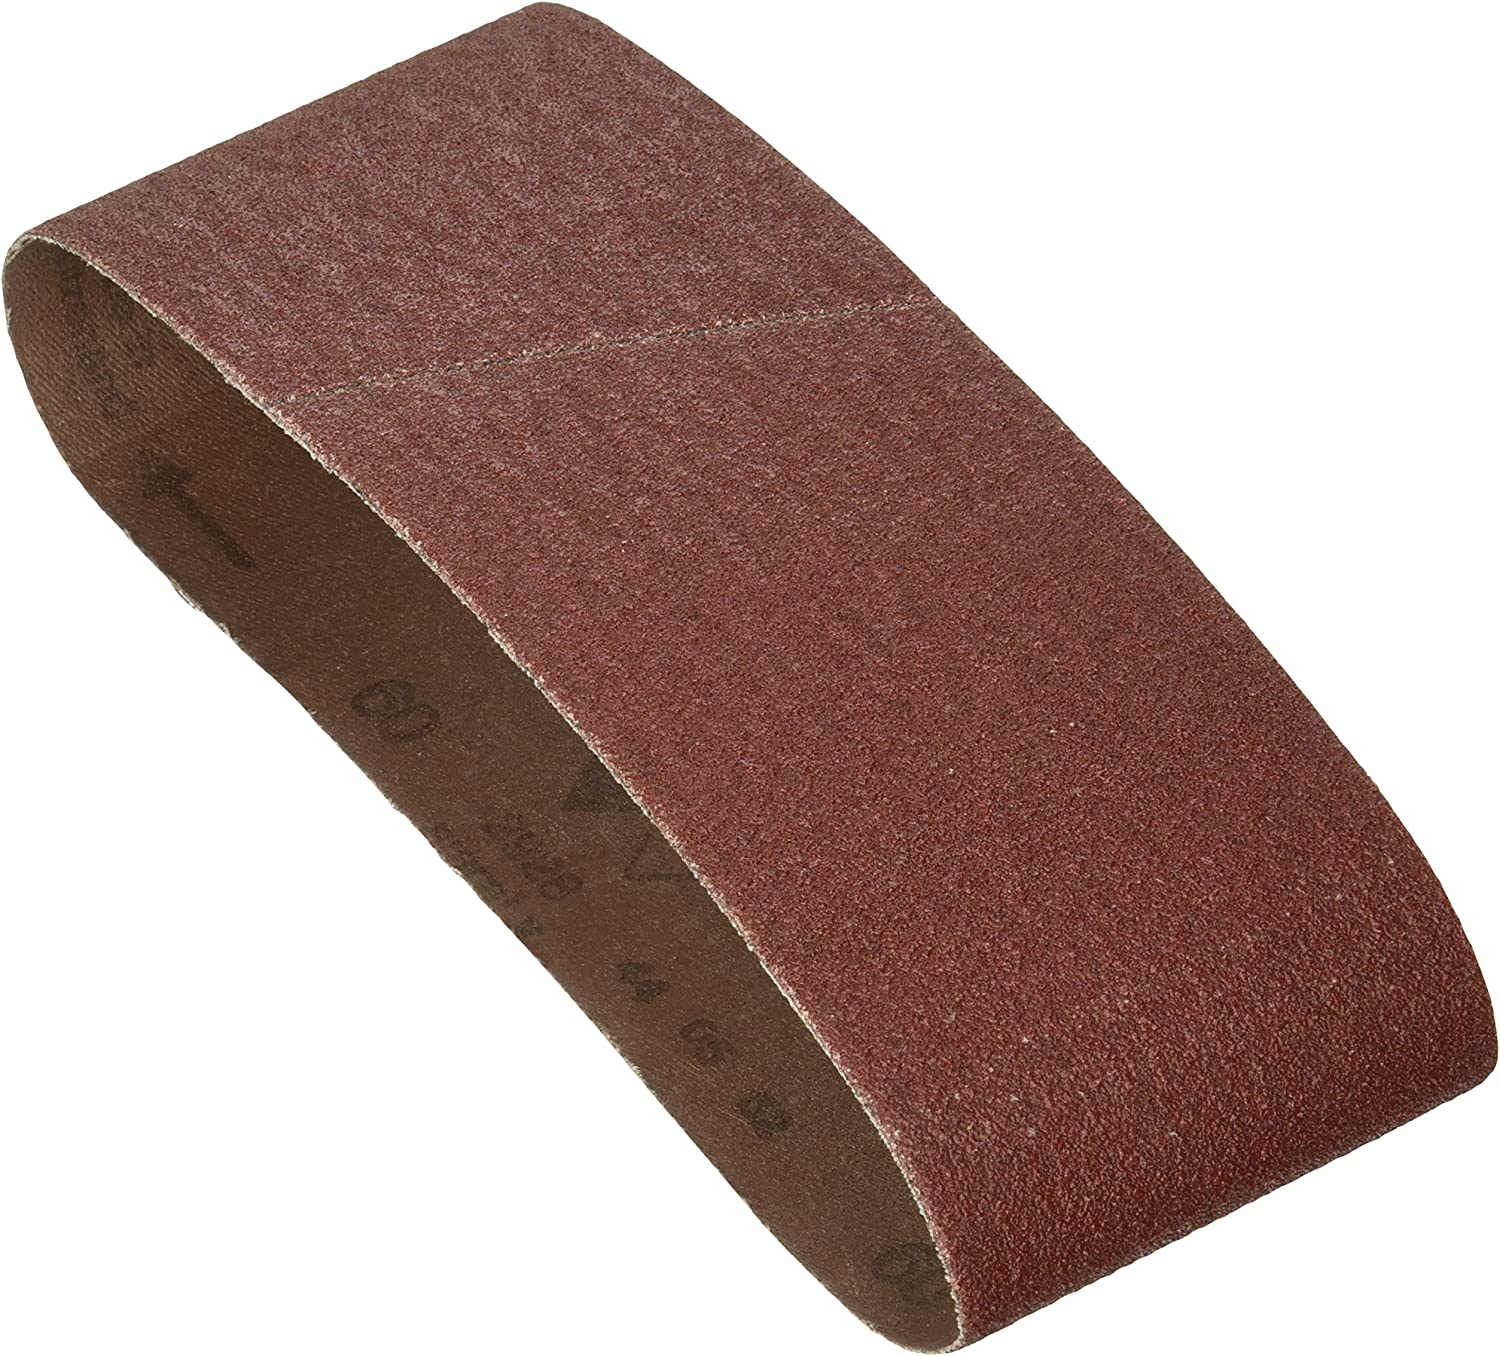 Grit 80 Sanding Belt 1//4 W x 18 In L